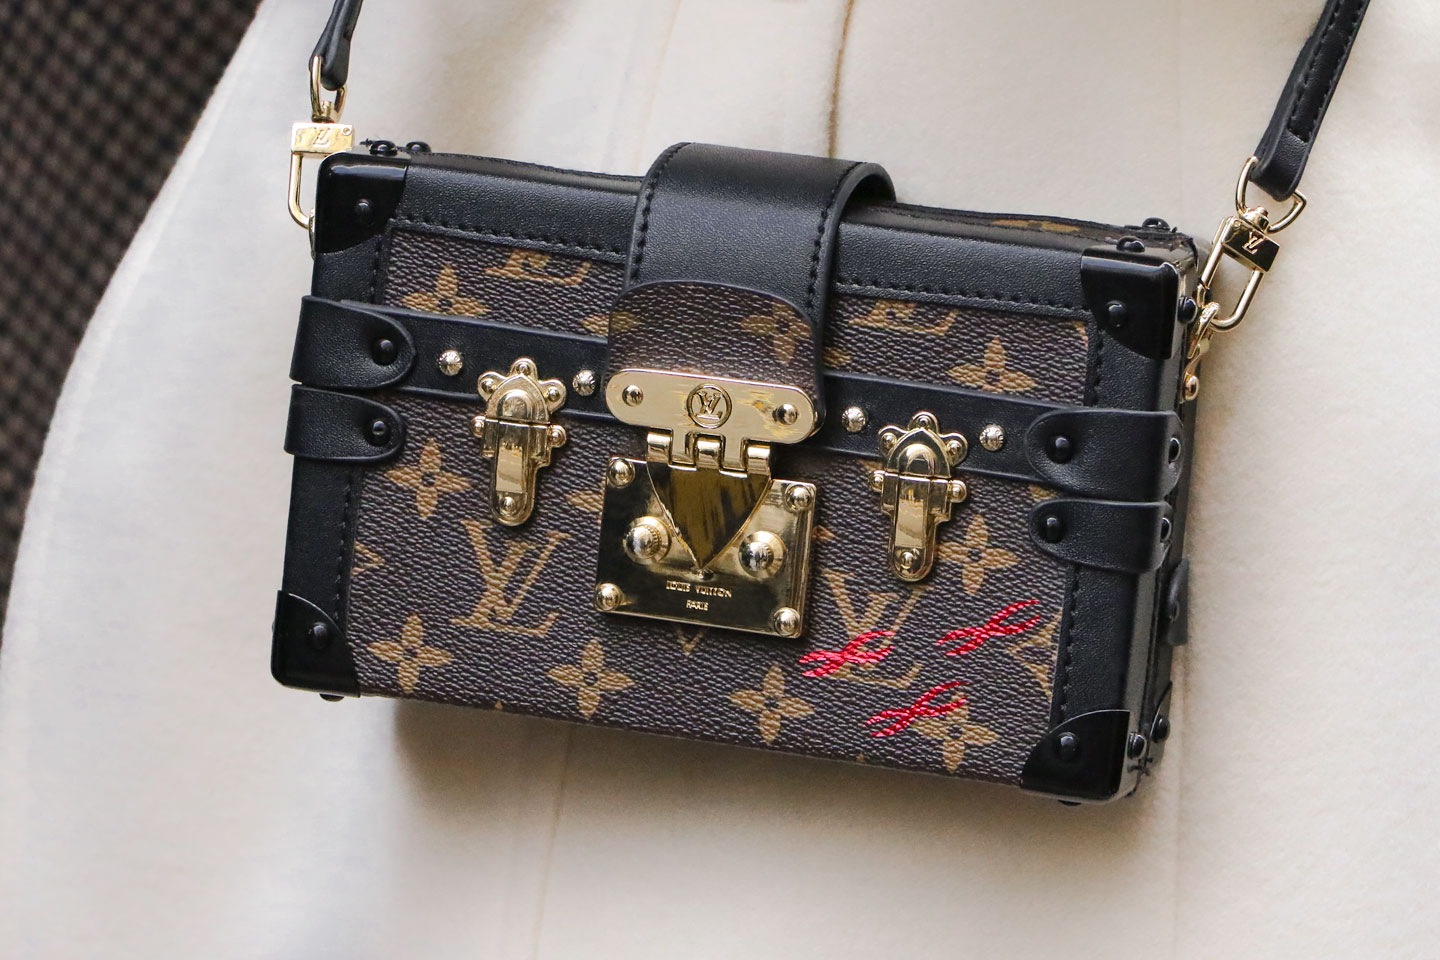 French Photographer Fashion Photography Petite Malle by Louis Vuitton